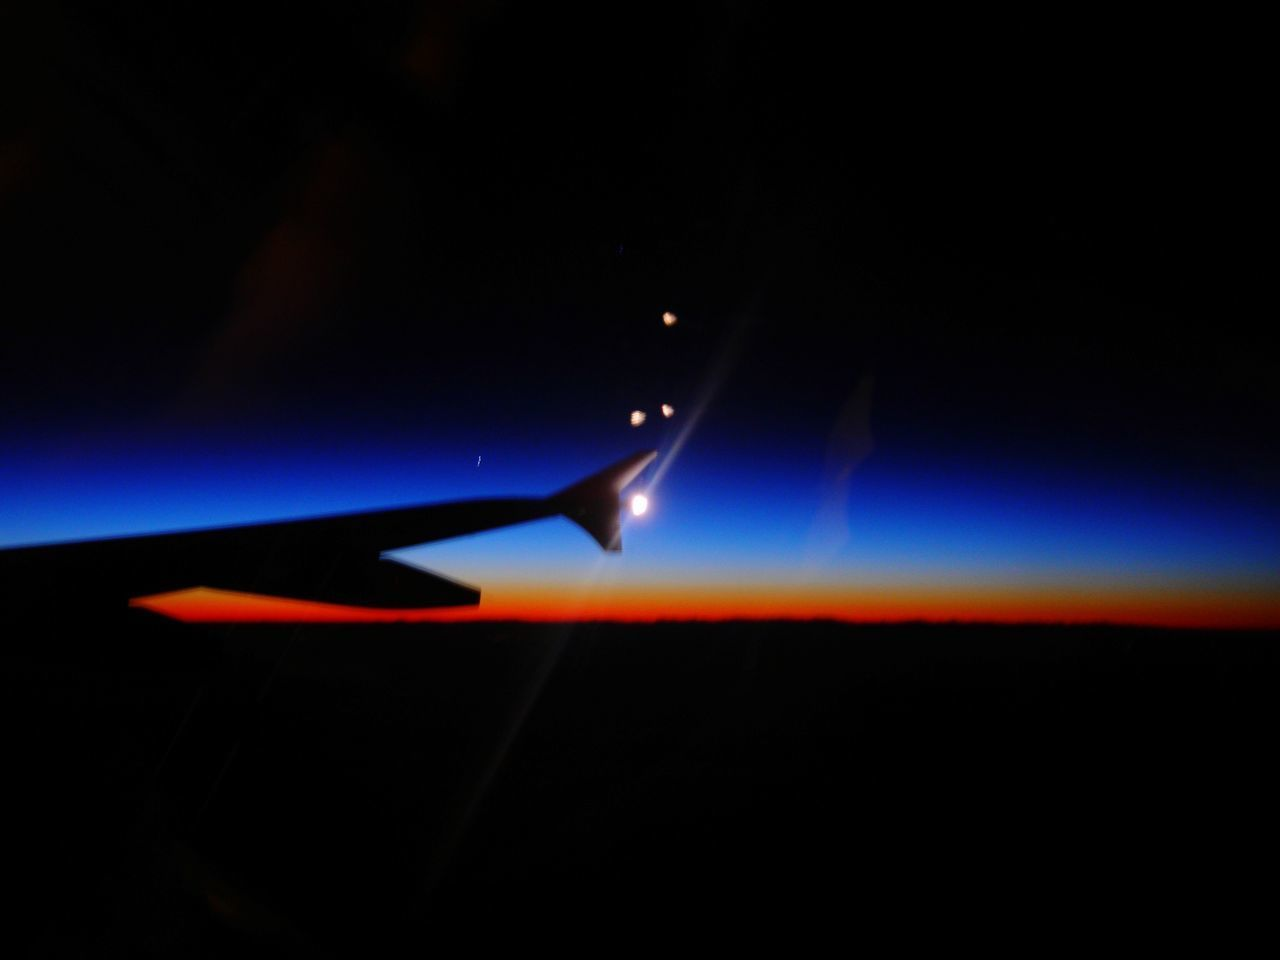 airplane, air vehicle, night, no people, sky, mode of transportation, flying, illuminated, nature, transportation, travel, motion, mid-air, dark, aircraft wing, outdoors, silhouette, vehicle interior, beauty in nature, copy space, aerospace industry, nightlife